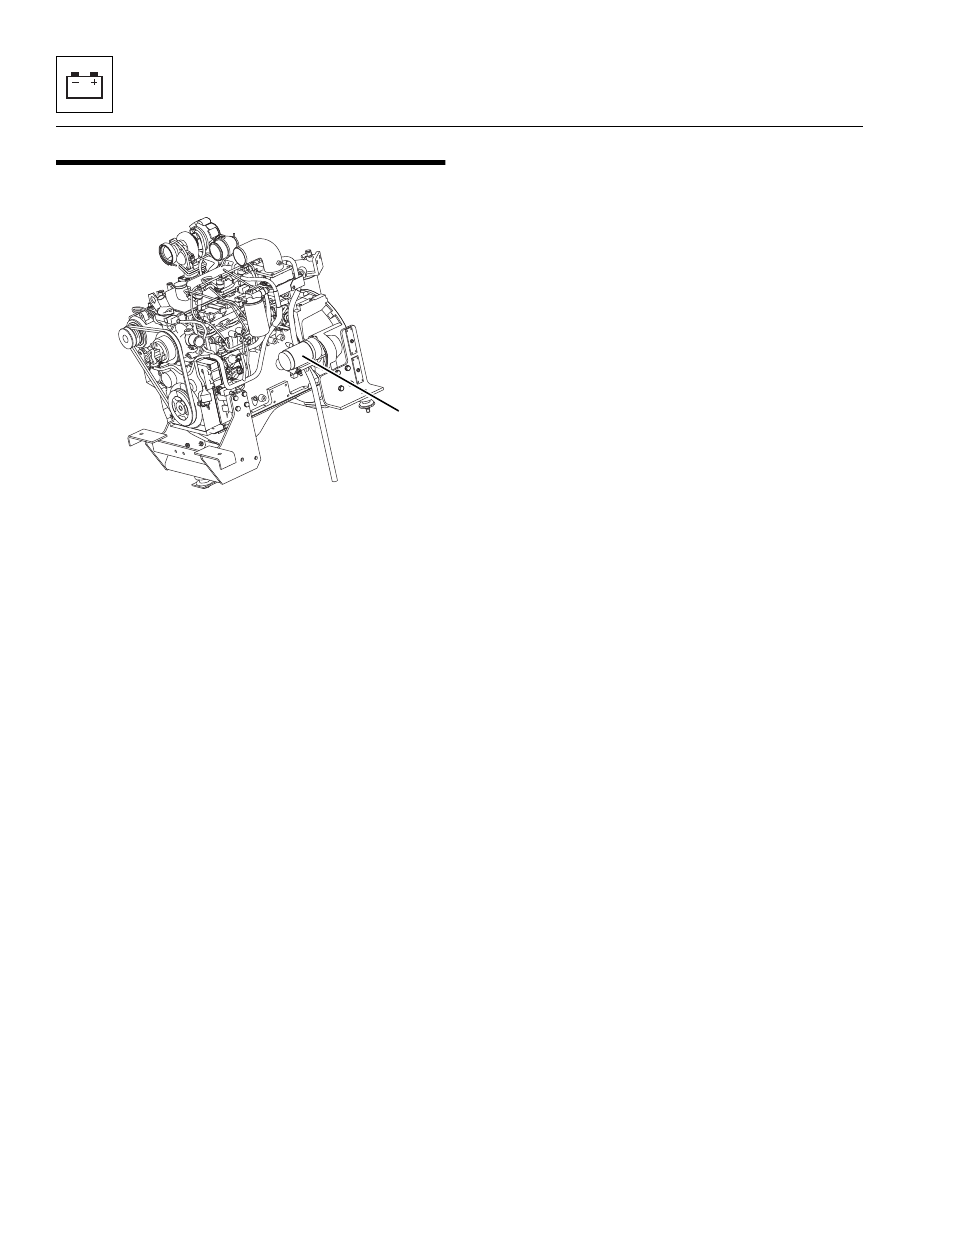 skytrak 8042 service manual page194 6 engine start circuit, 1 starter, engine start circuit skytrak skytrak 6036 wiring diagram at bayanpartner.co